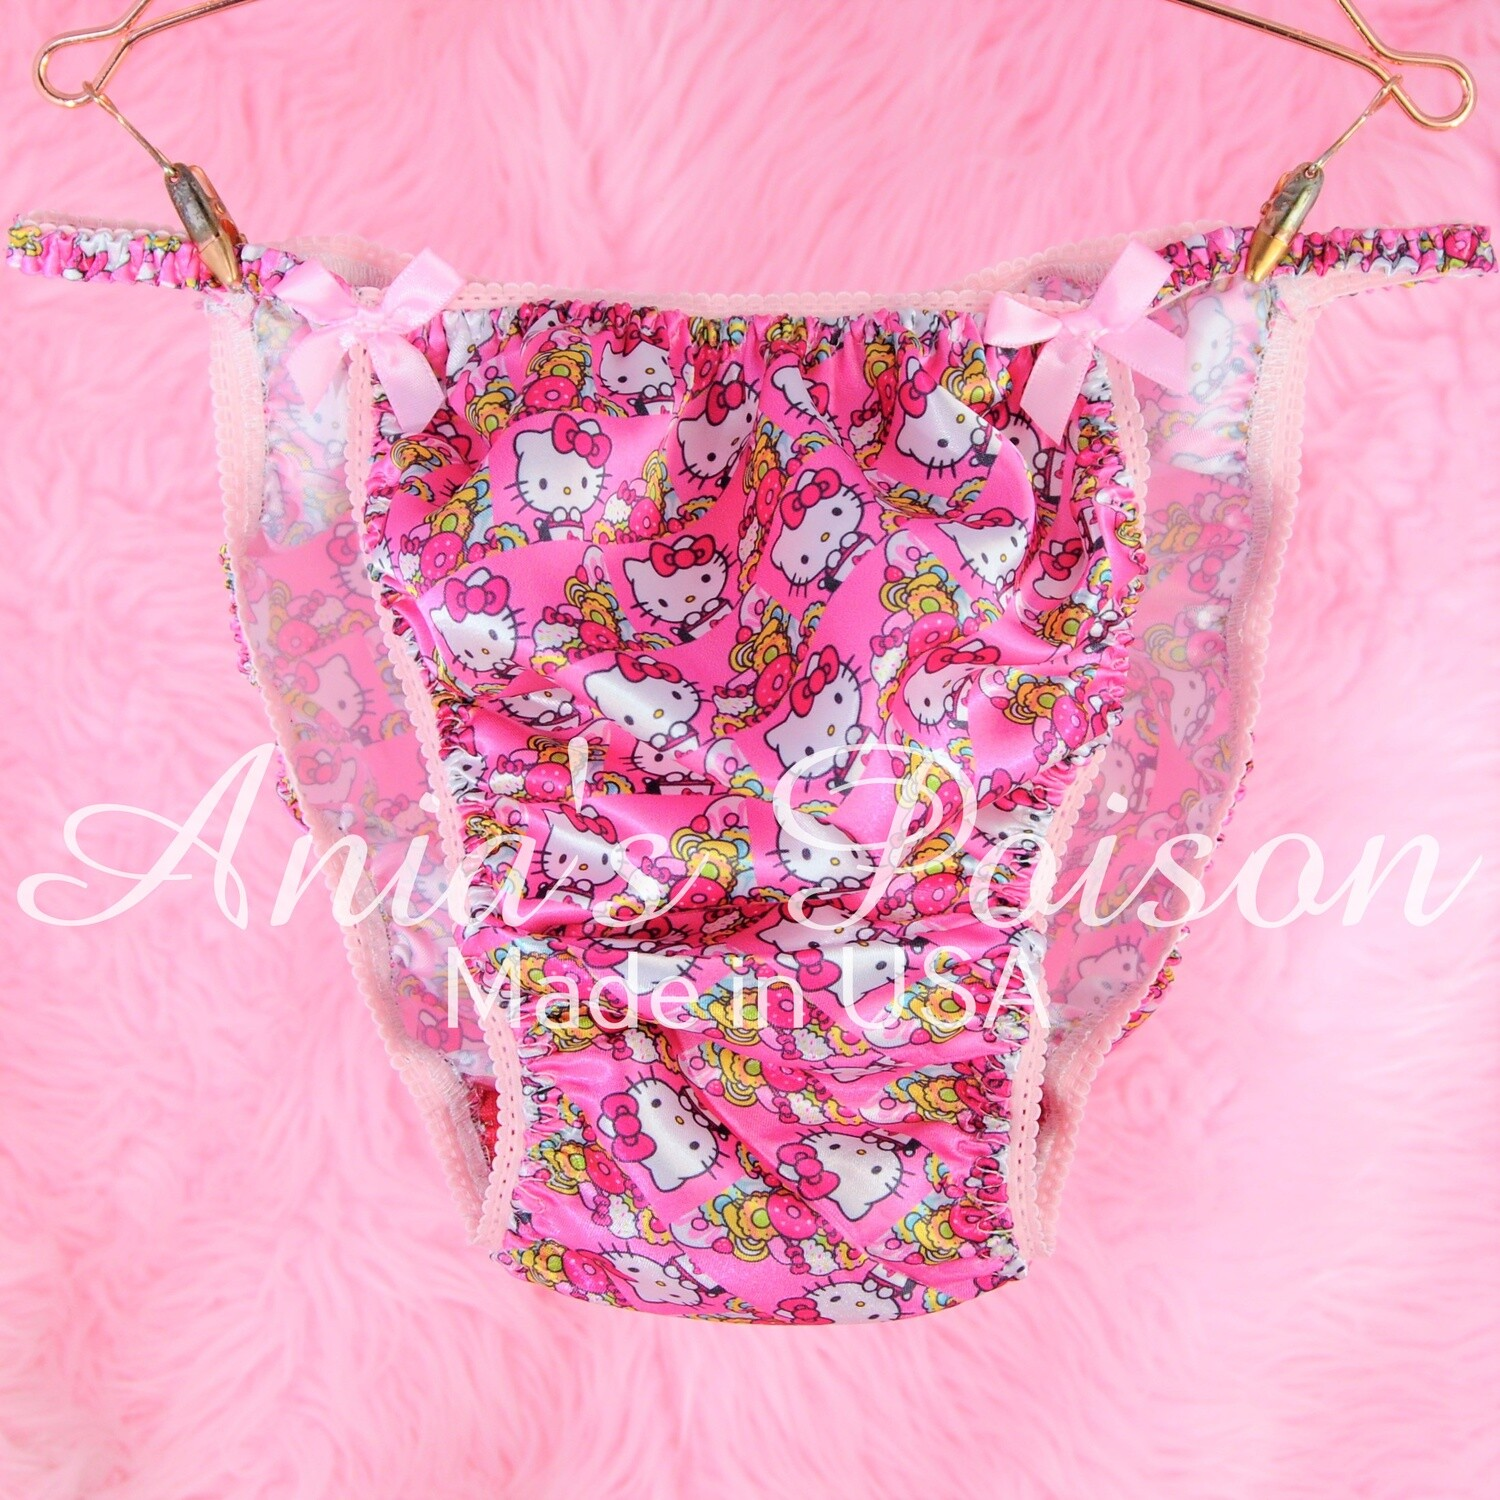 Ania's Poison Satin hello Kitty Pink Princess String Bikini mens panties - KAWAII